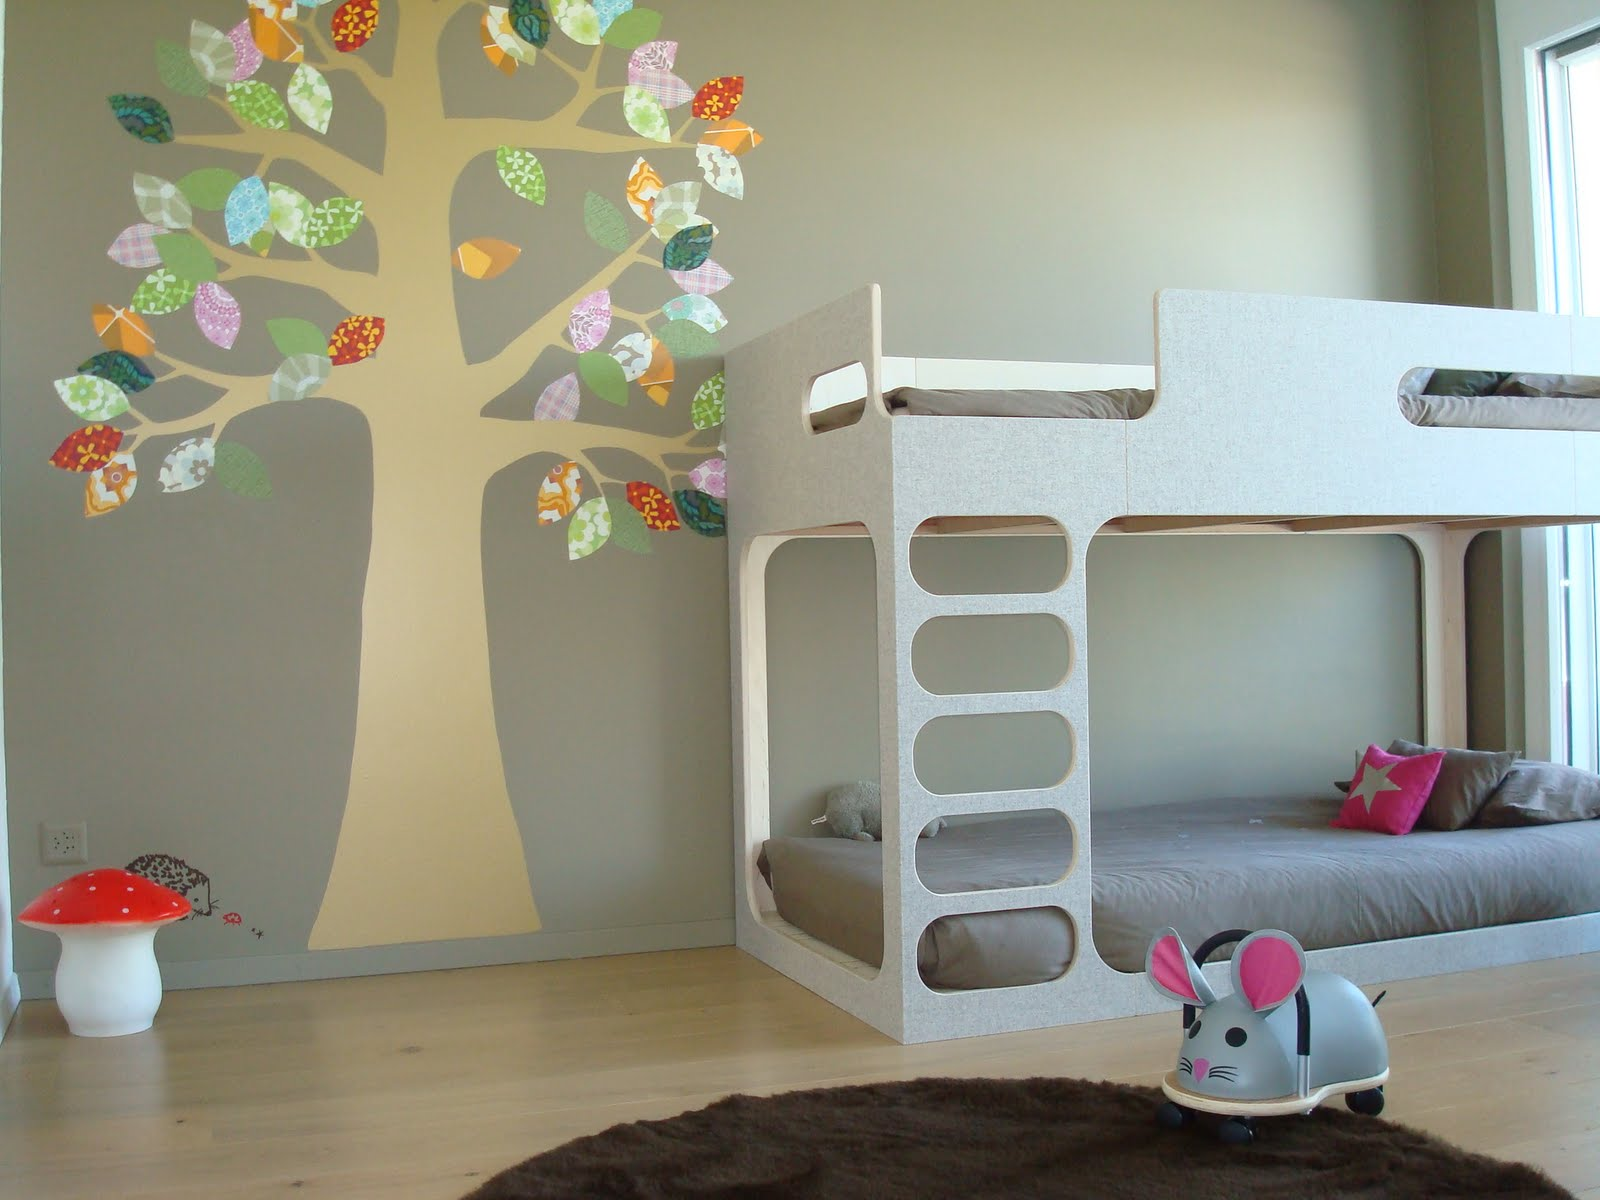 Childrens bedroom wallpaper ideas home decor uk for Bedroom ideas wallpaper